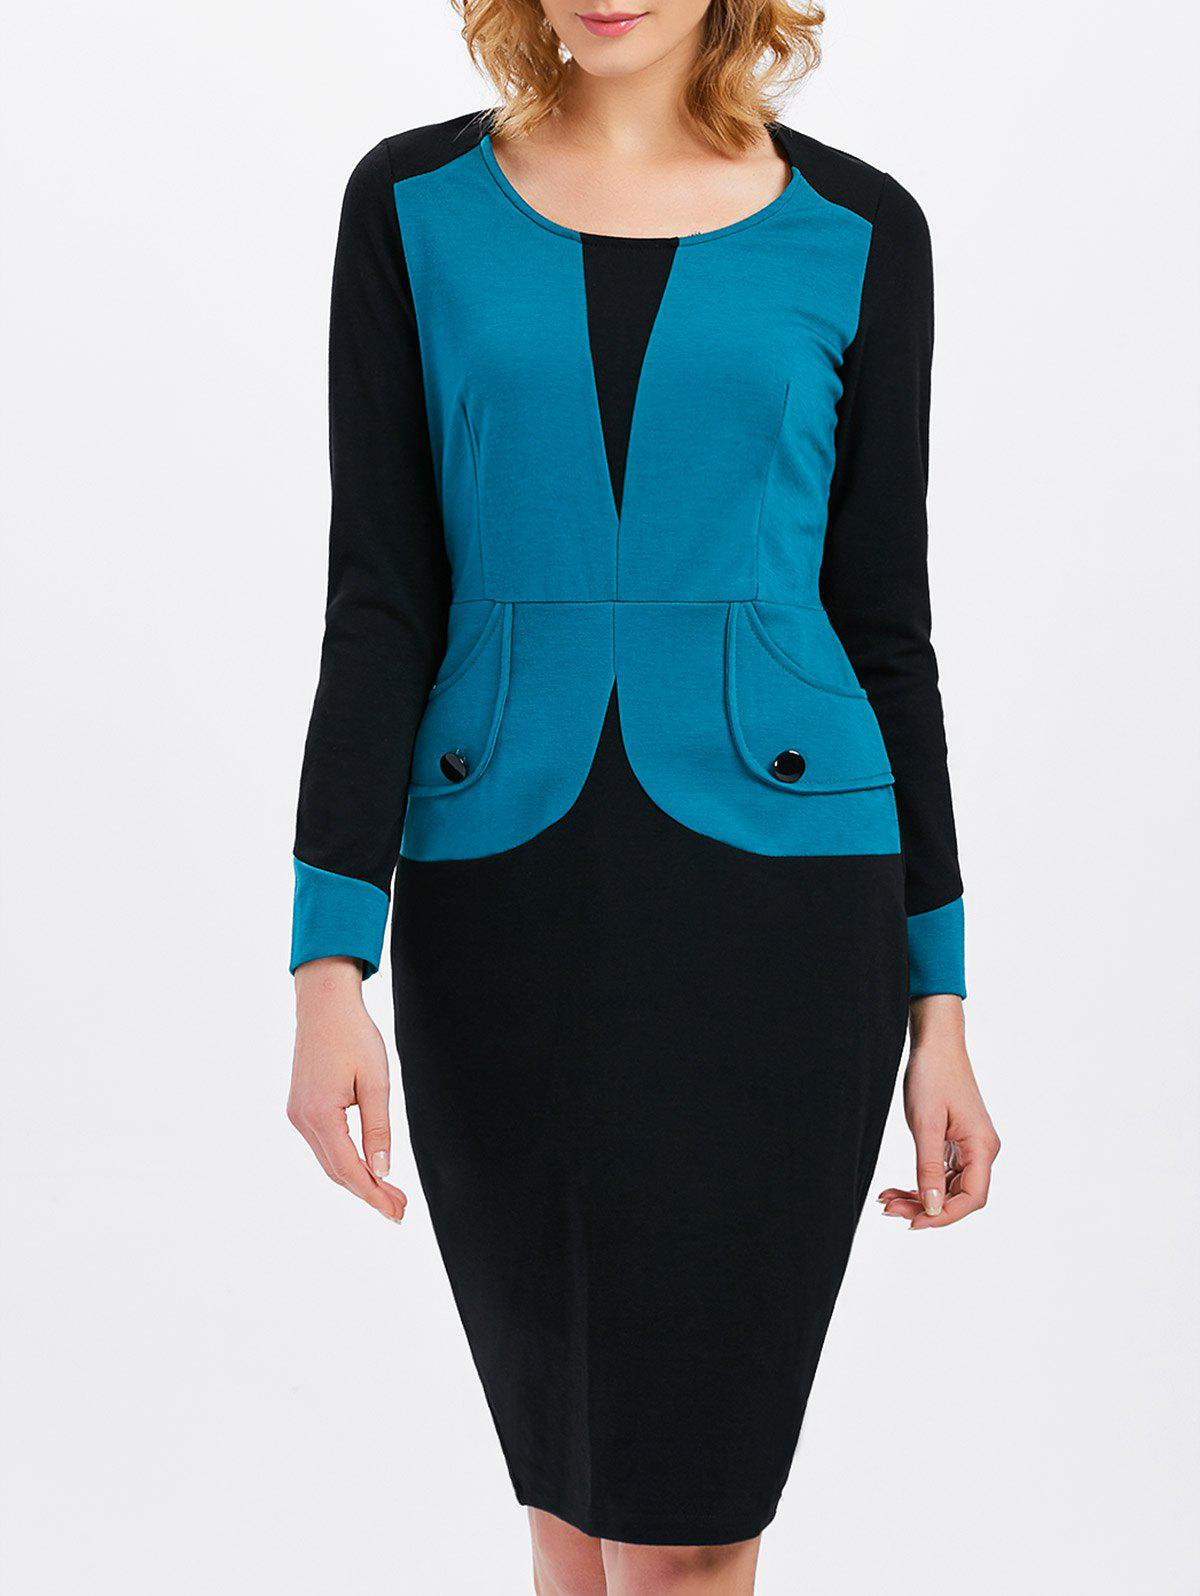 Long Sleeve Contrast Insert Buttoned DressWomen<br><br><br>Size: XL<br>Color: LAKE BLUE